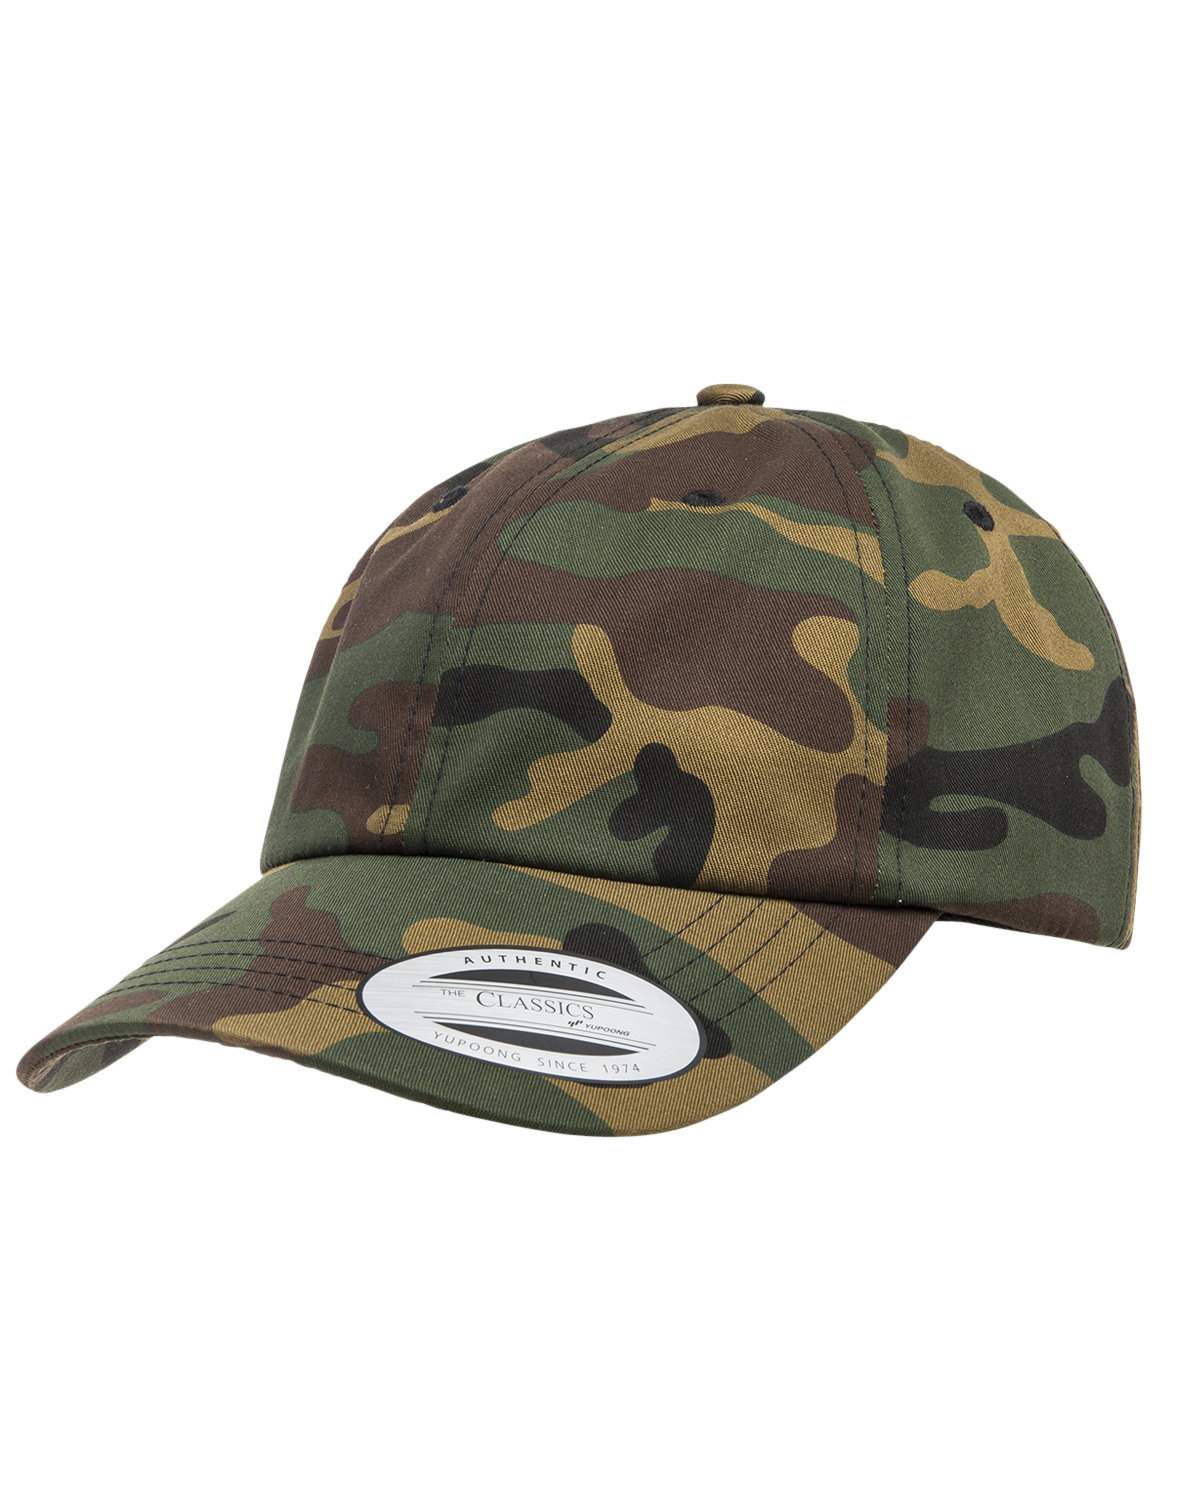 Yupoong Adult Low-Profile Cotton Twill Dad Cap GREEN CAMO